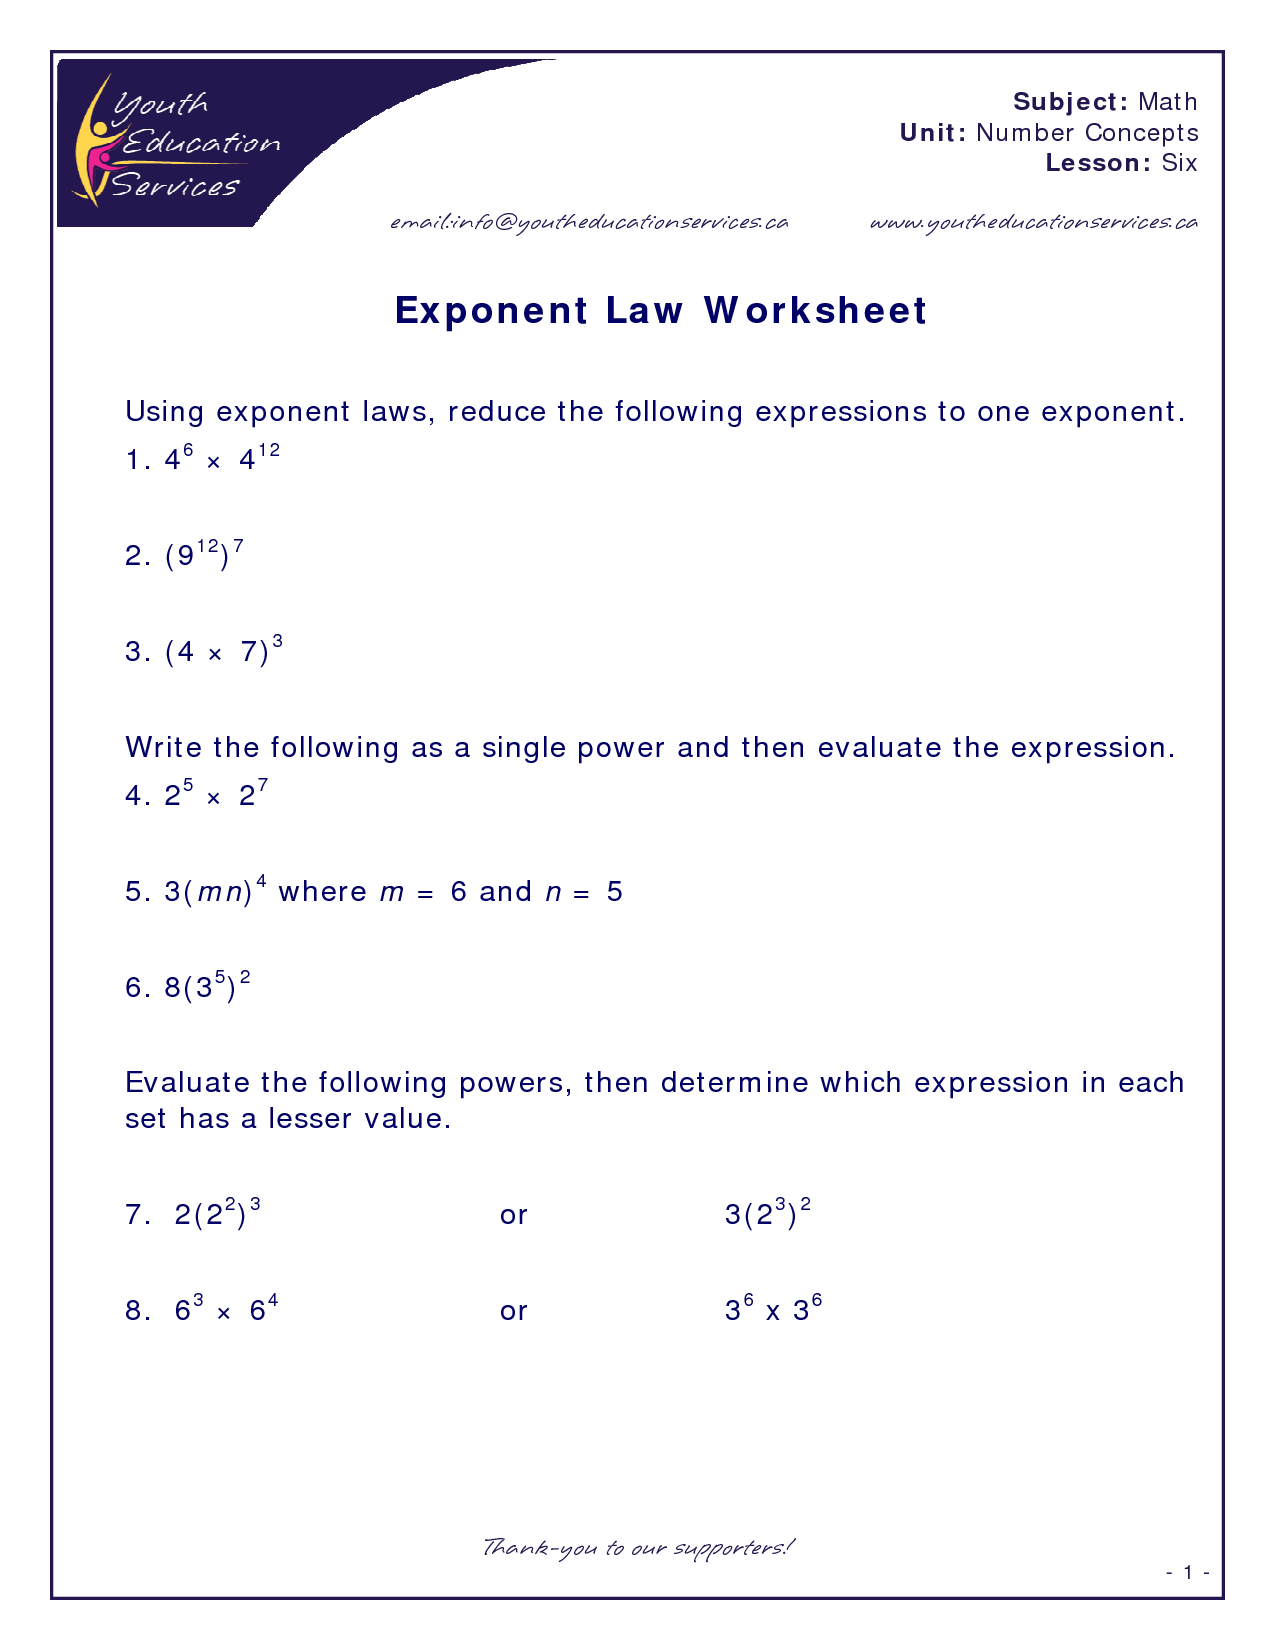 worksheet 6th Grade Math Review Worksheets 6th grade math review worksheets abitlikethis comprehension fourth reading best images of printable exponent rules for exponents